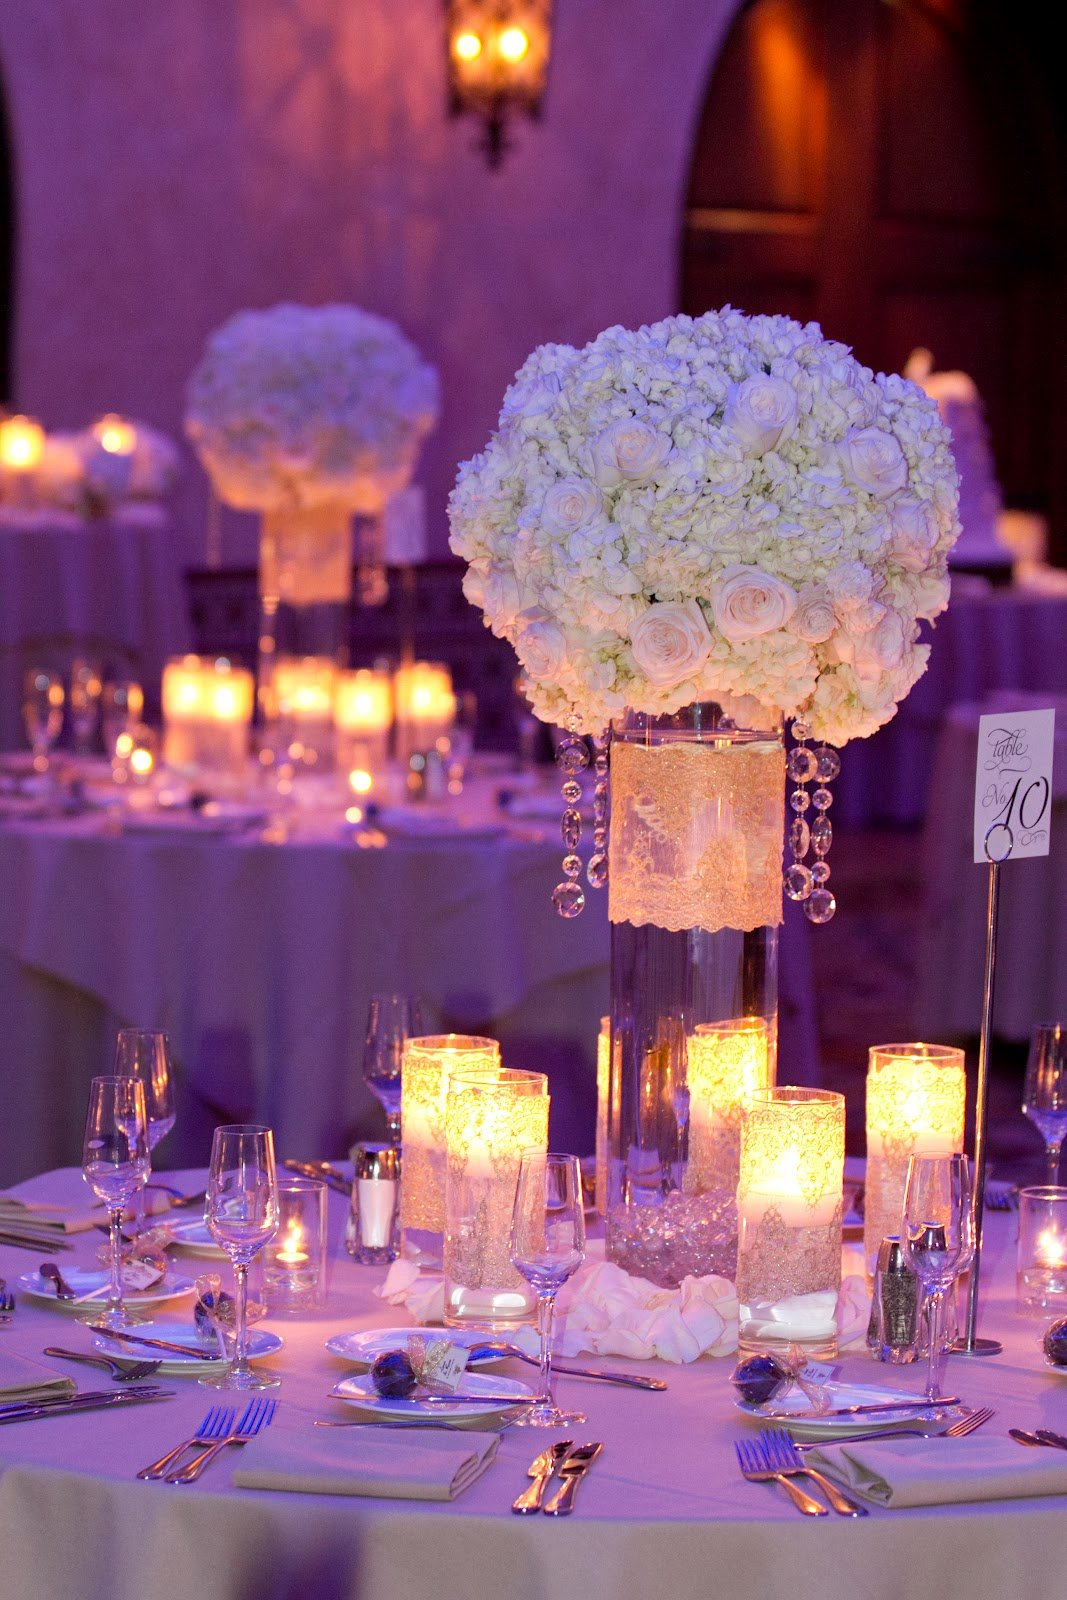 Show me your centerpieces the knot romantic white centerpieces with crystals gold laceg izmirmasajfo